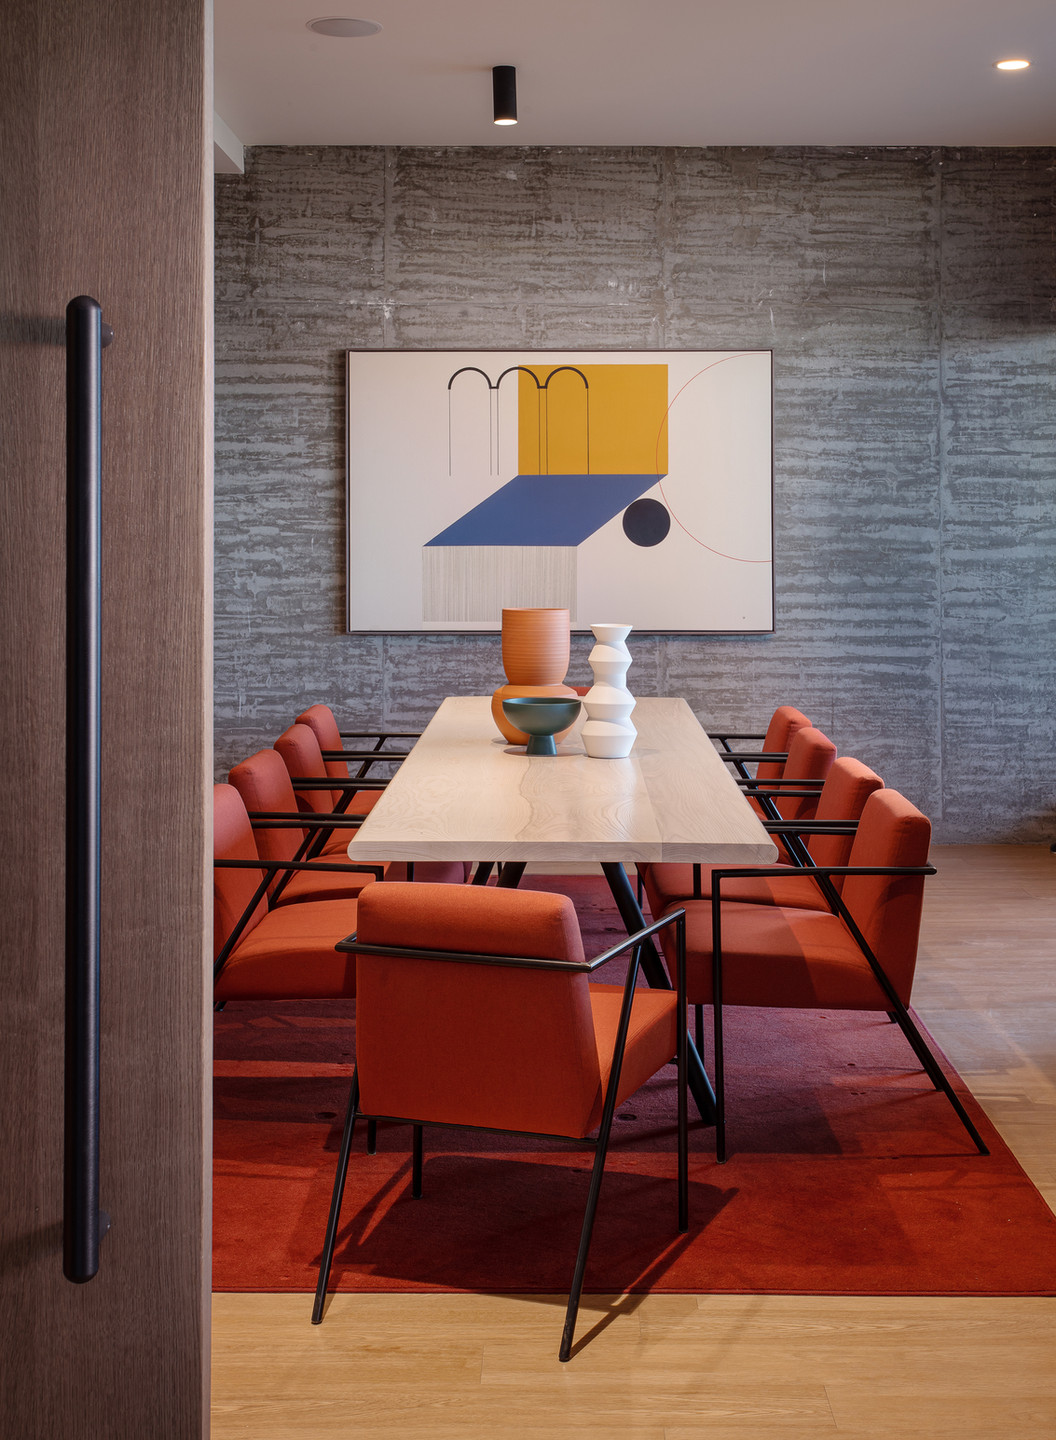 Community dining room featuring art by Dani Hacche